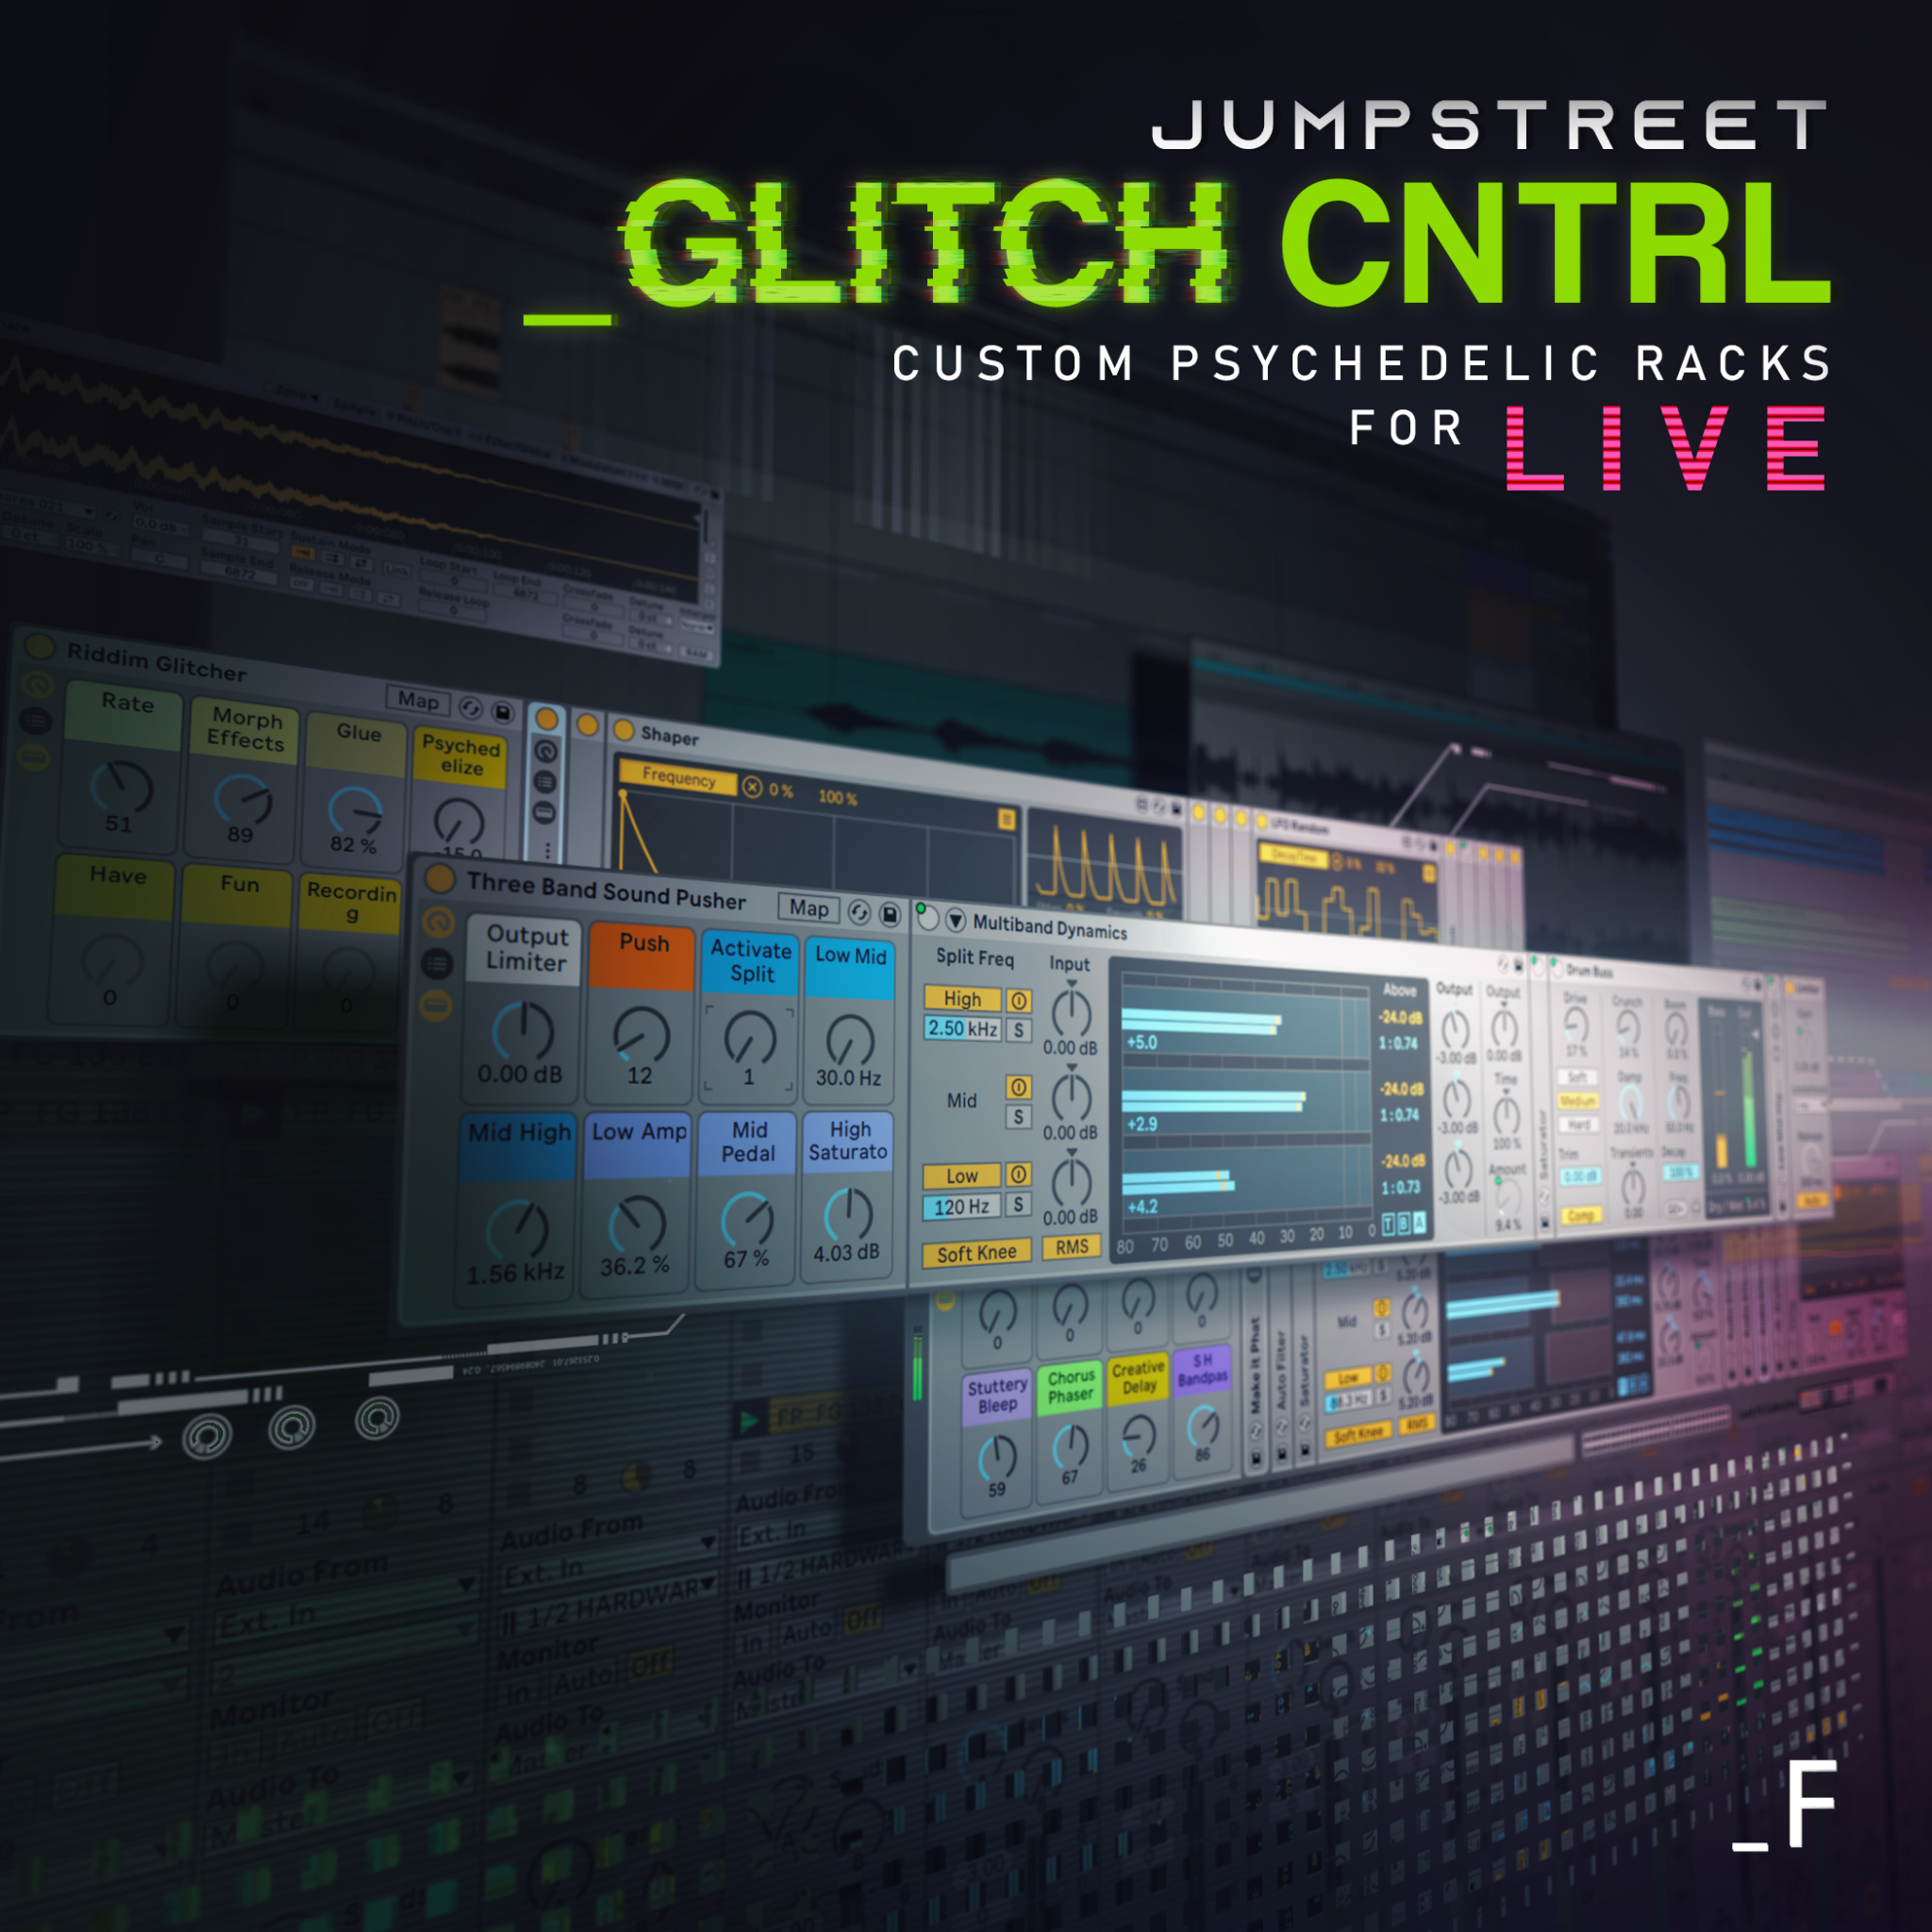 _Glitch CNTRL for Live